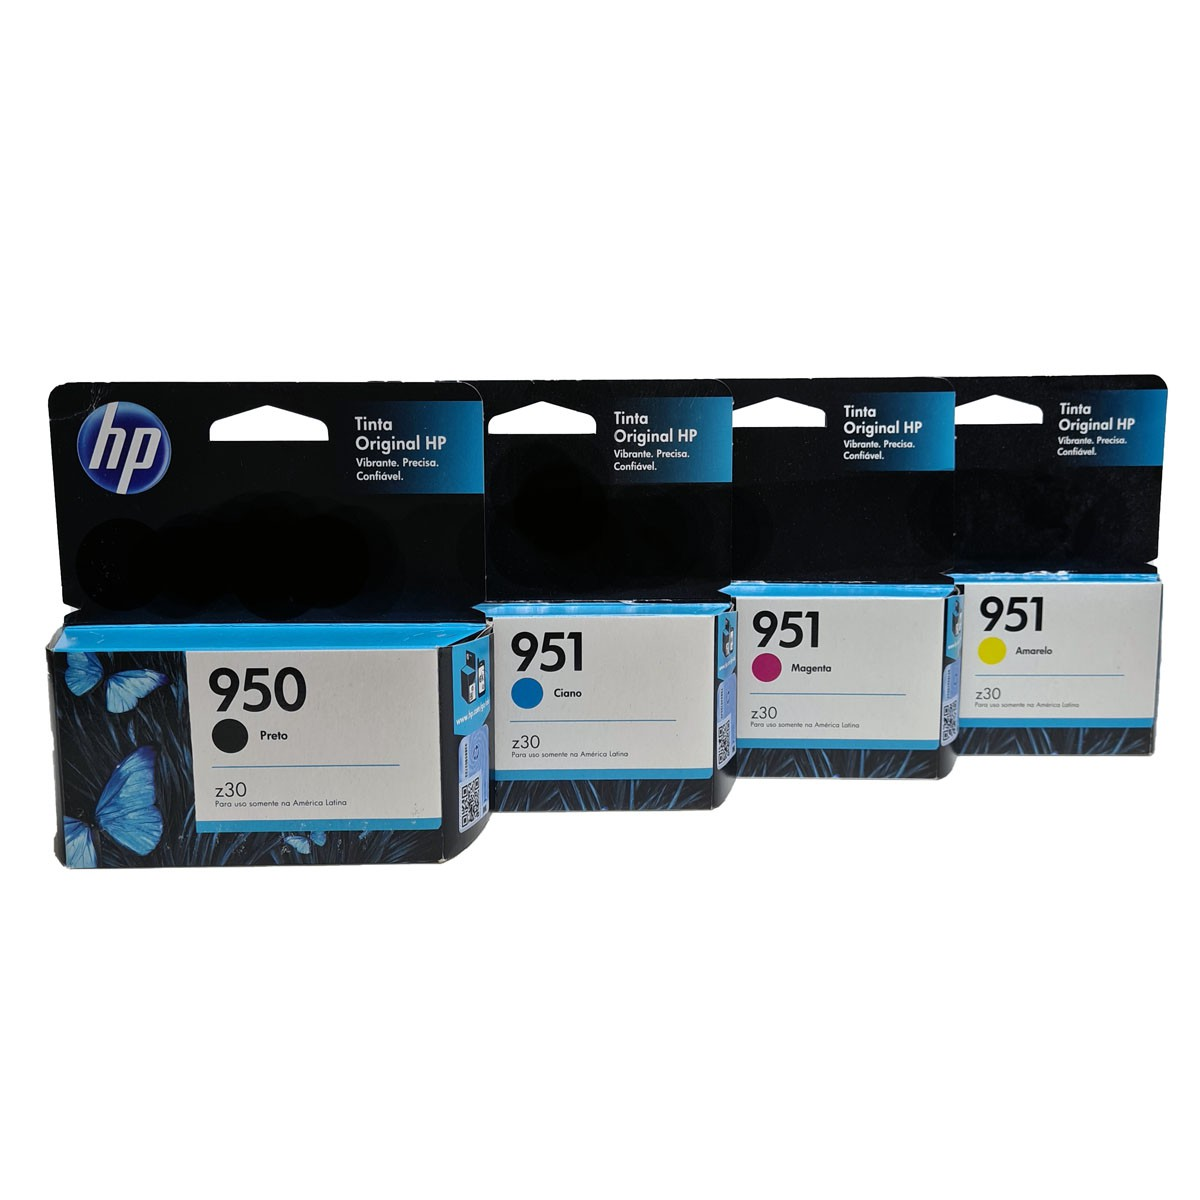 Kit 4 Cartucho HP 950 e 951 para OfficeJet pro 8100 8600 pro8600